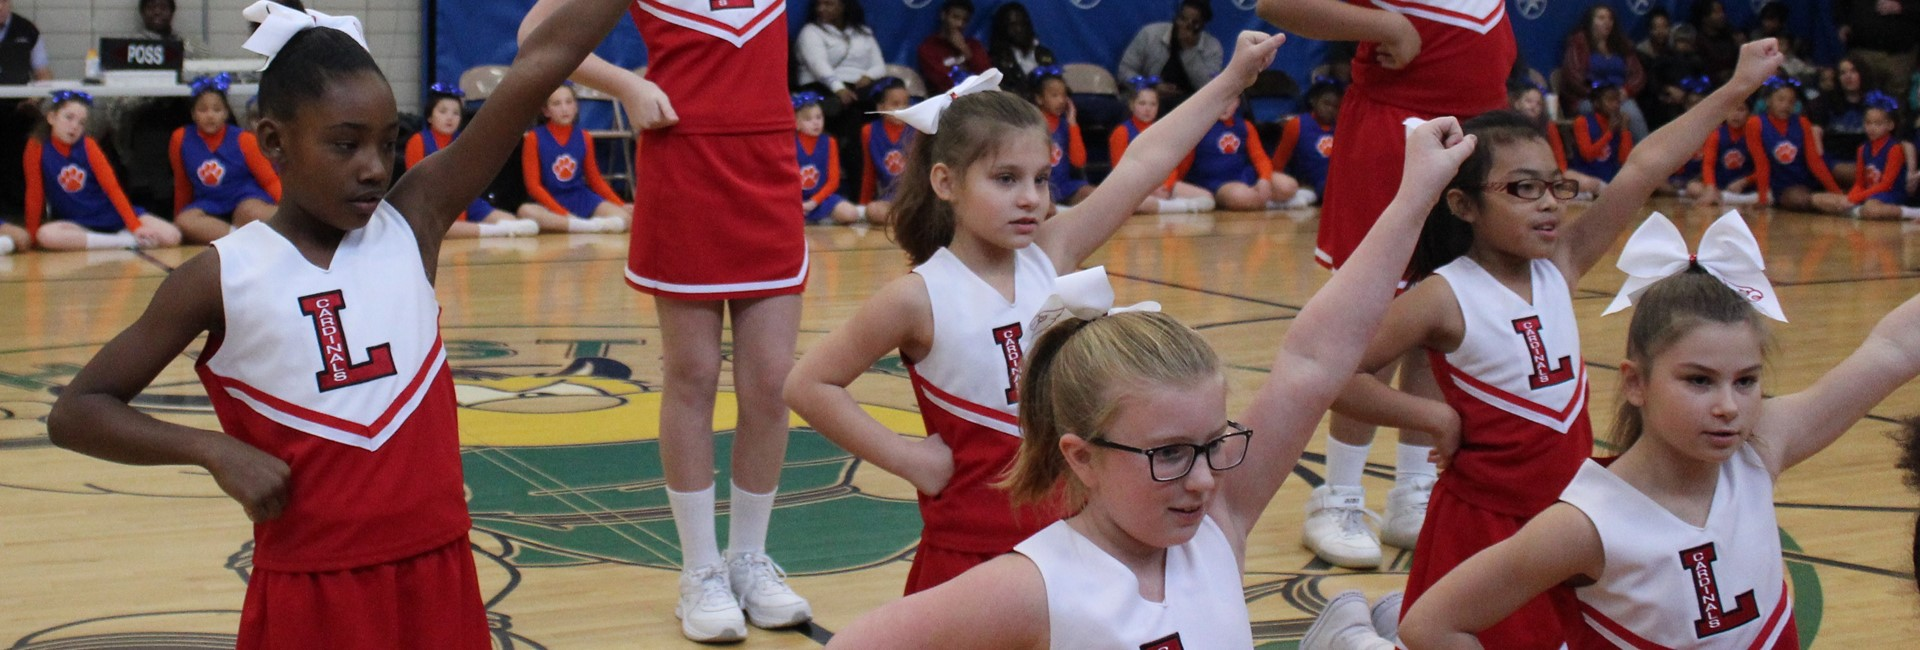 Cheerleaders Rockin' the Games